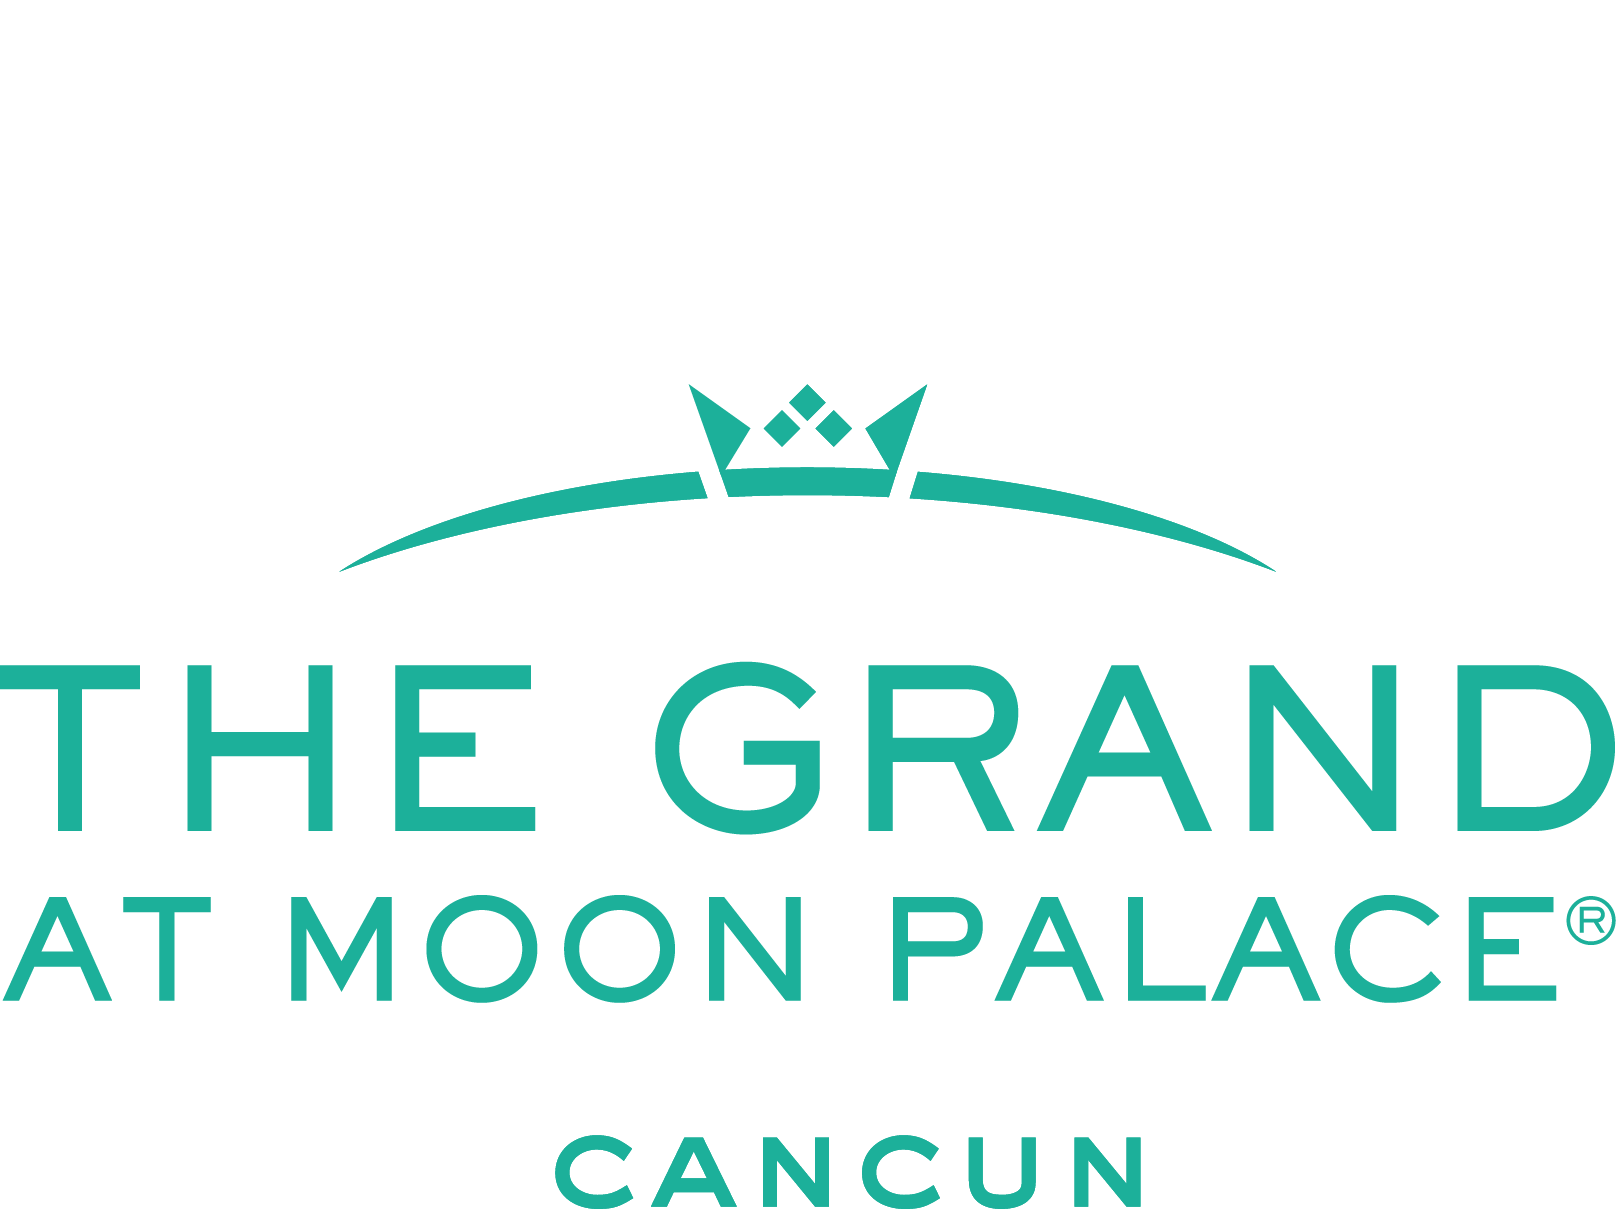 The Grand at Moon Palace Cancún